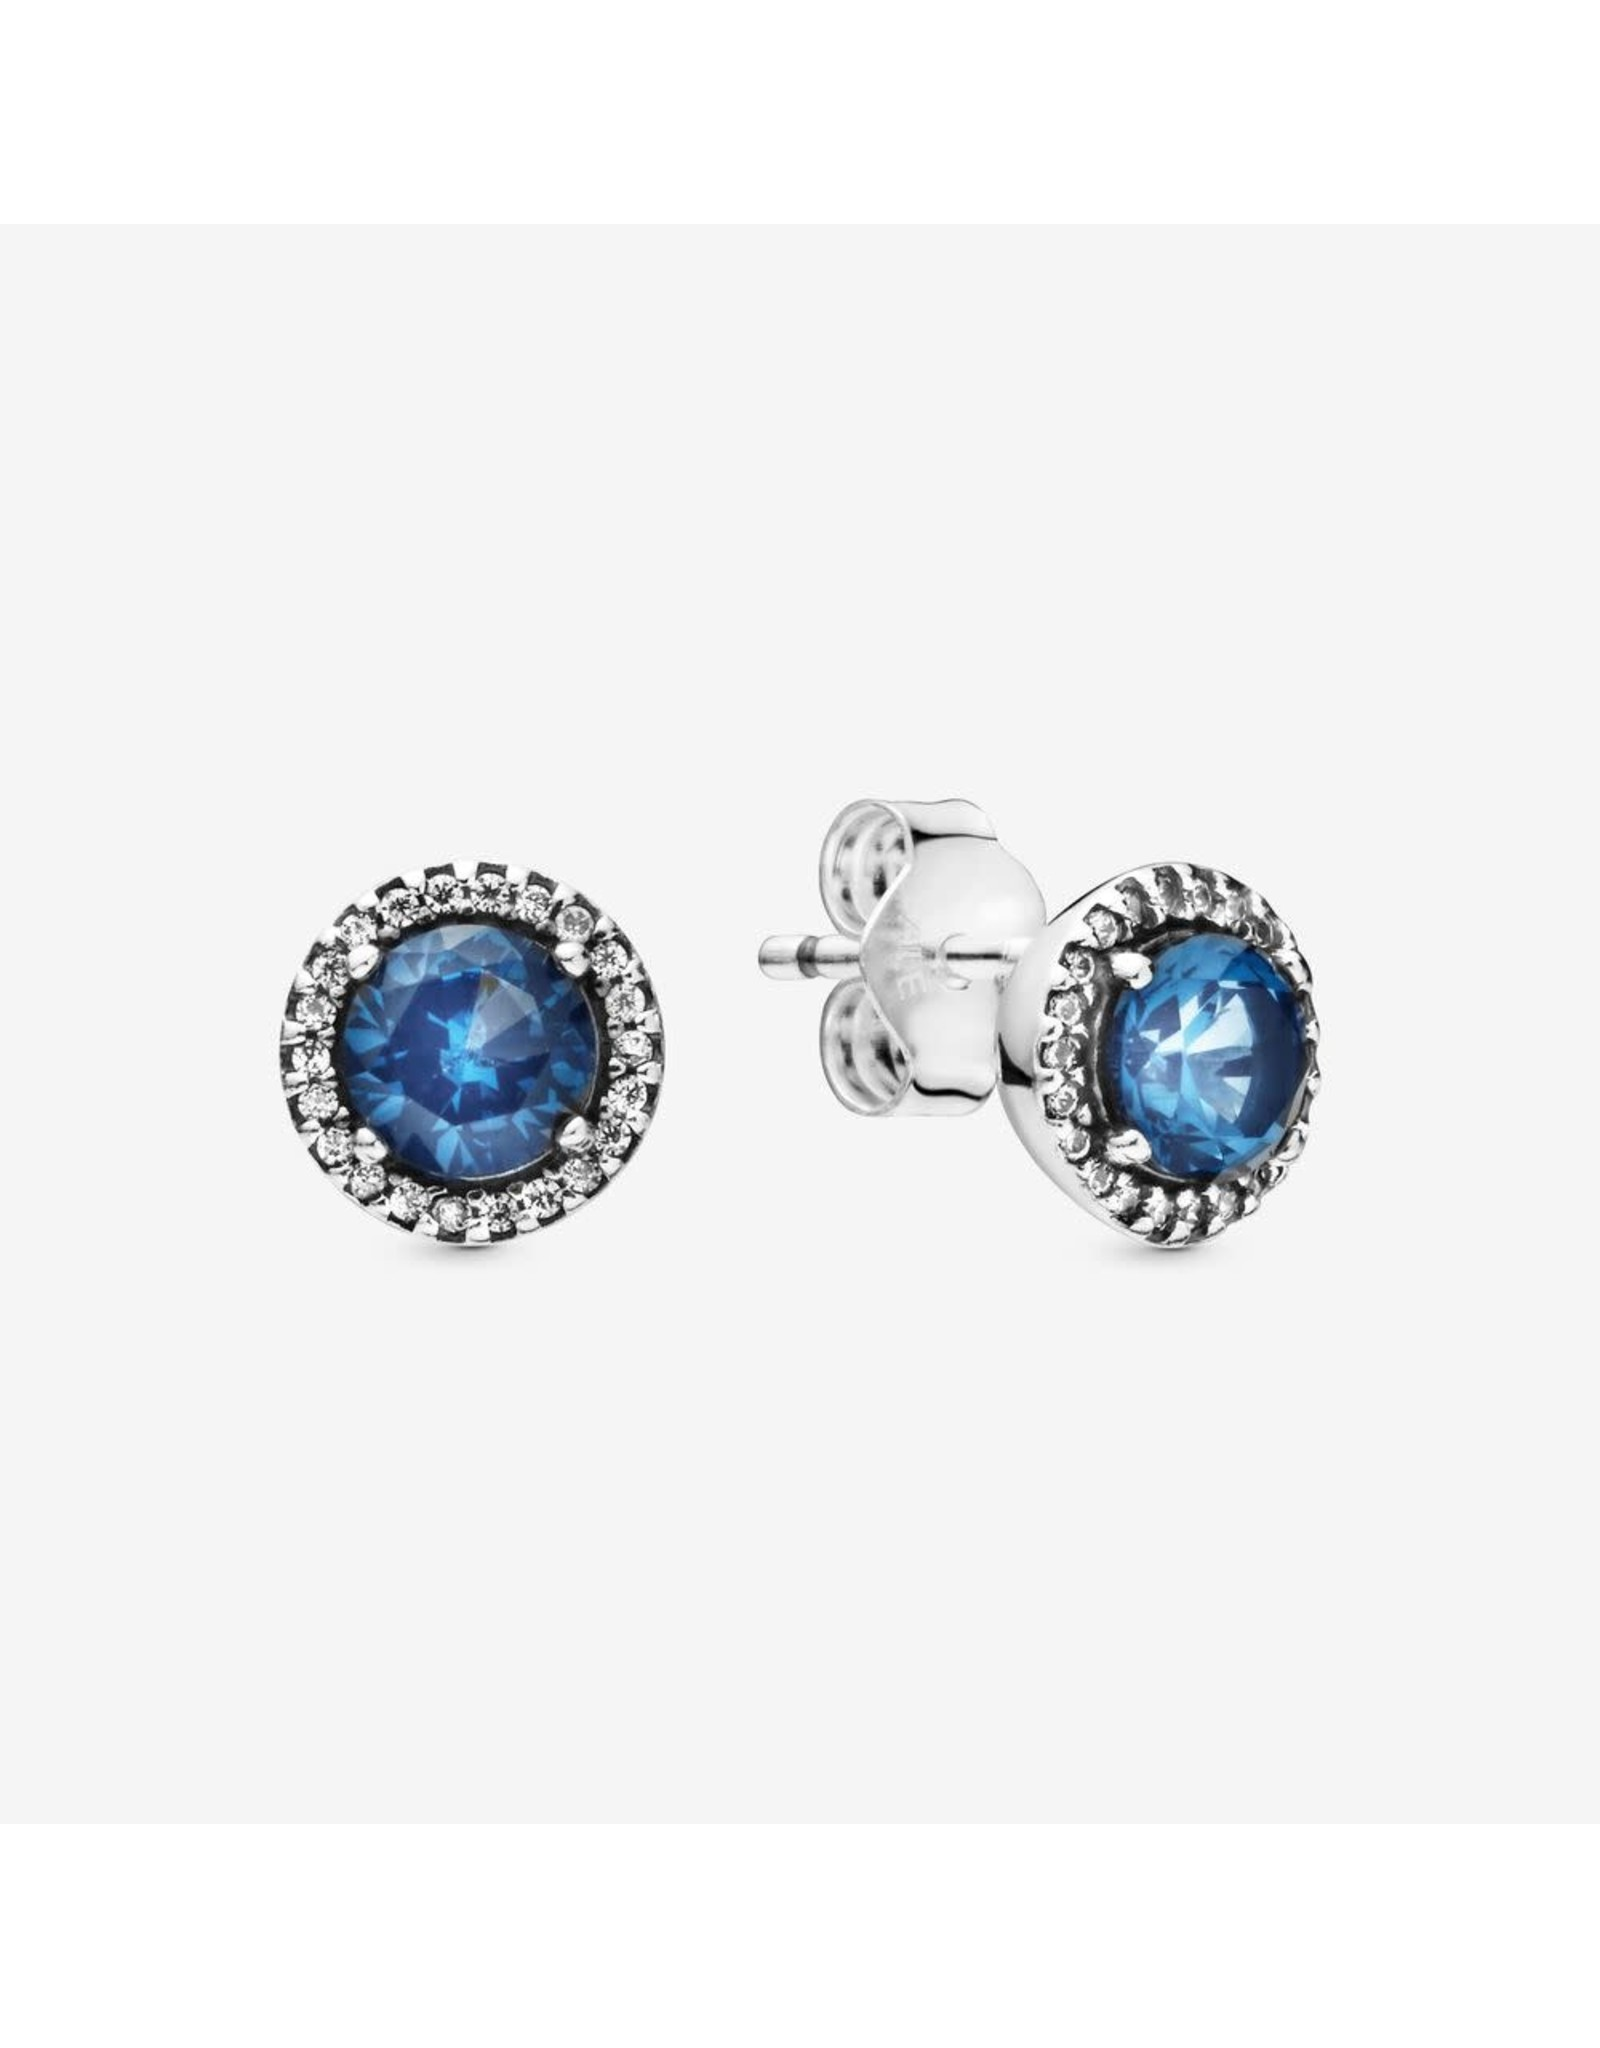 Pandora Pandora Sterling Silver Stud Earrings With Moonlight Blue Crystal And Clear CZ